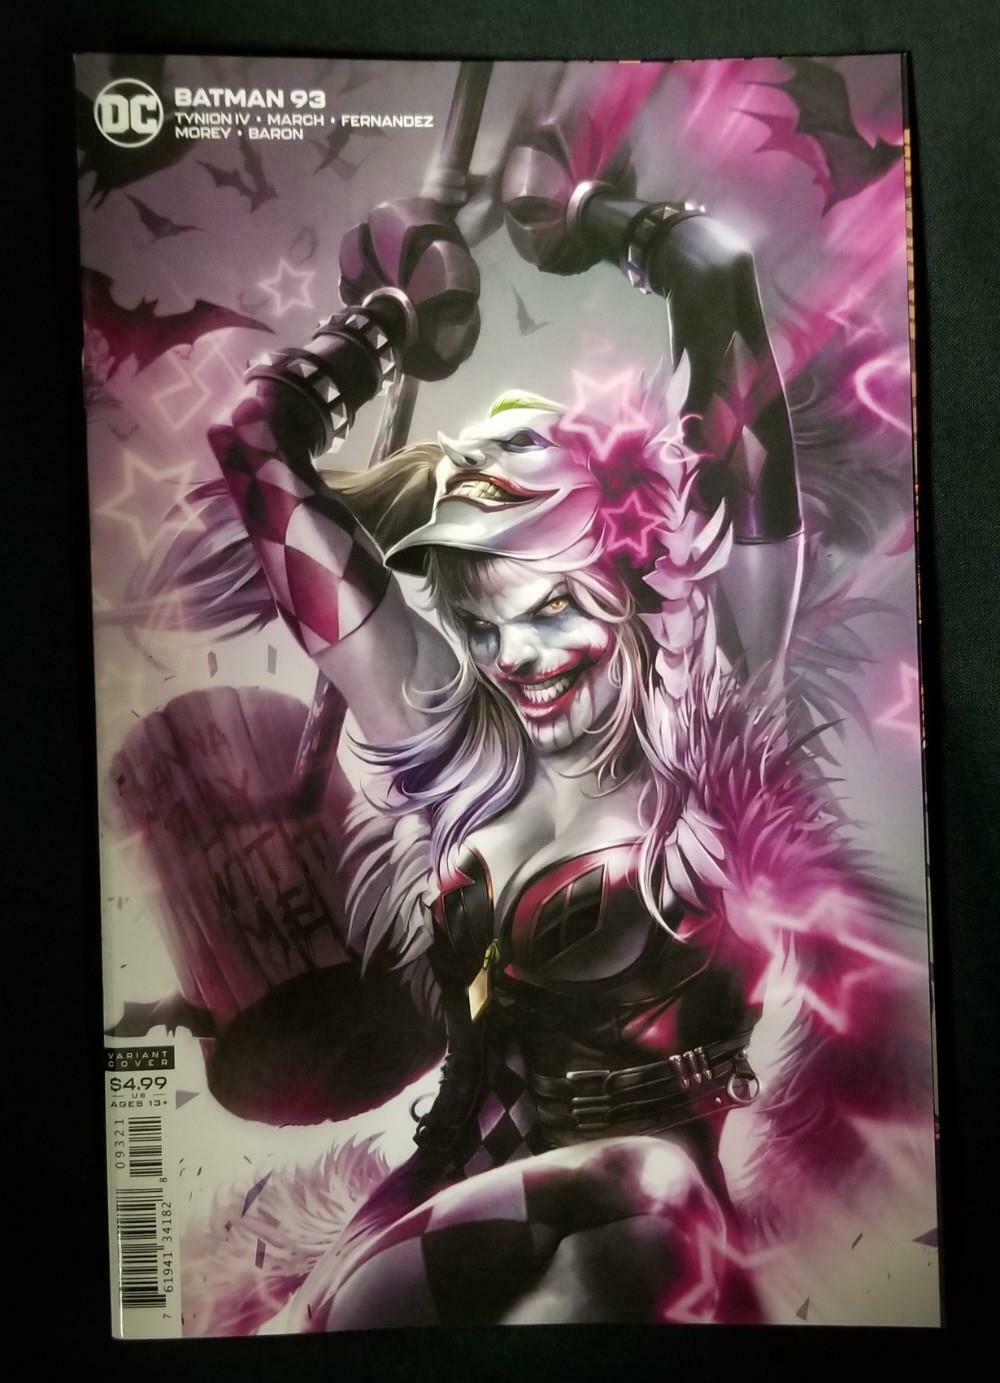 BATMAN #93 CARD STOCK MATTINA VARIANT (JOKER WAR)